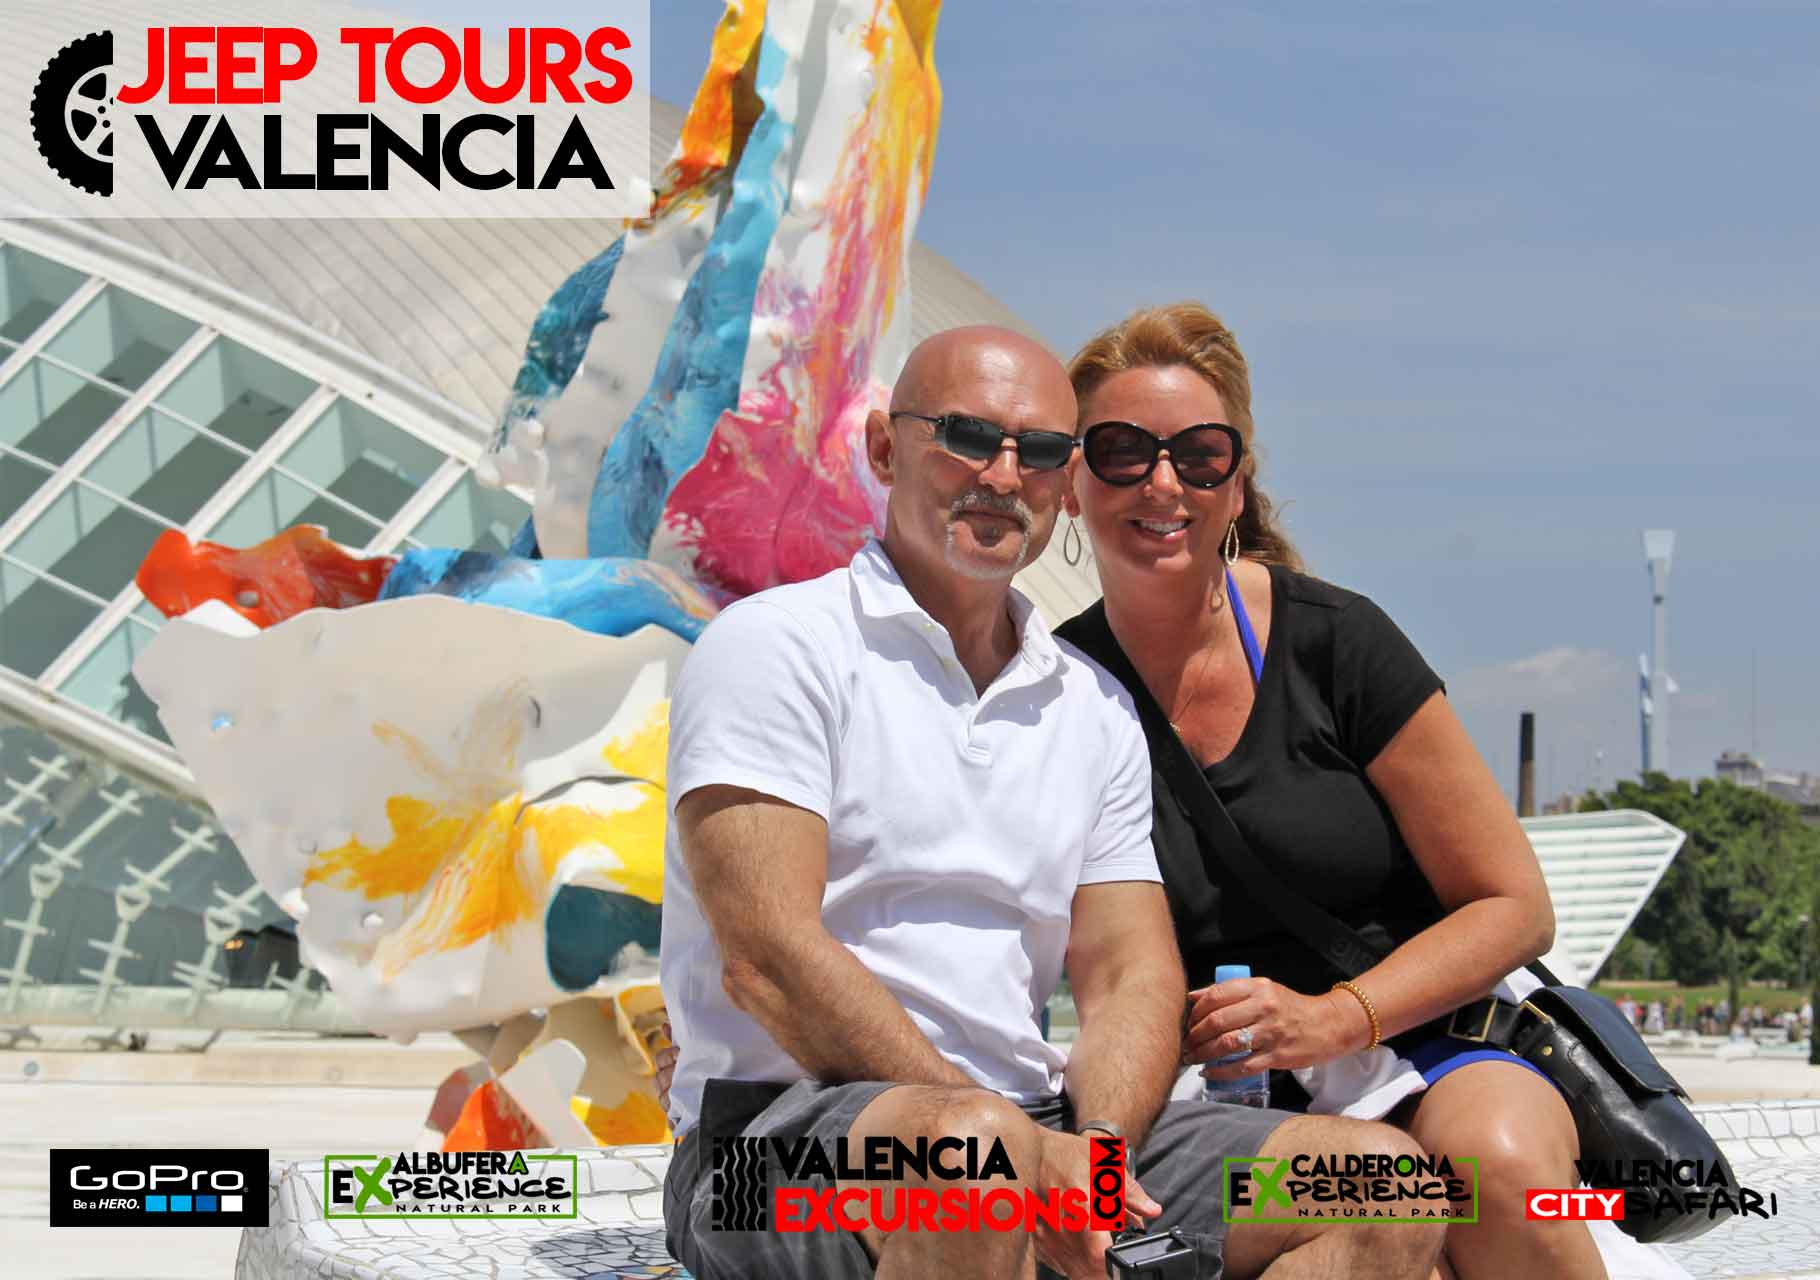 Sightseeing tour Valencia